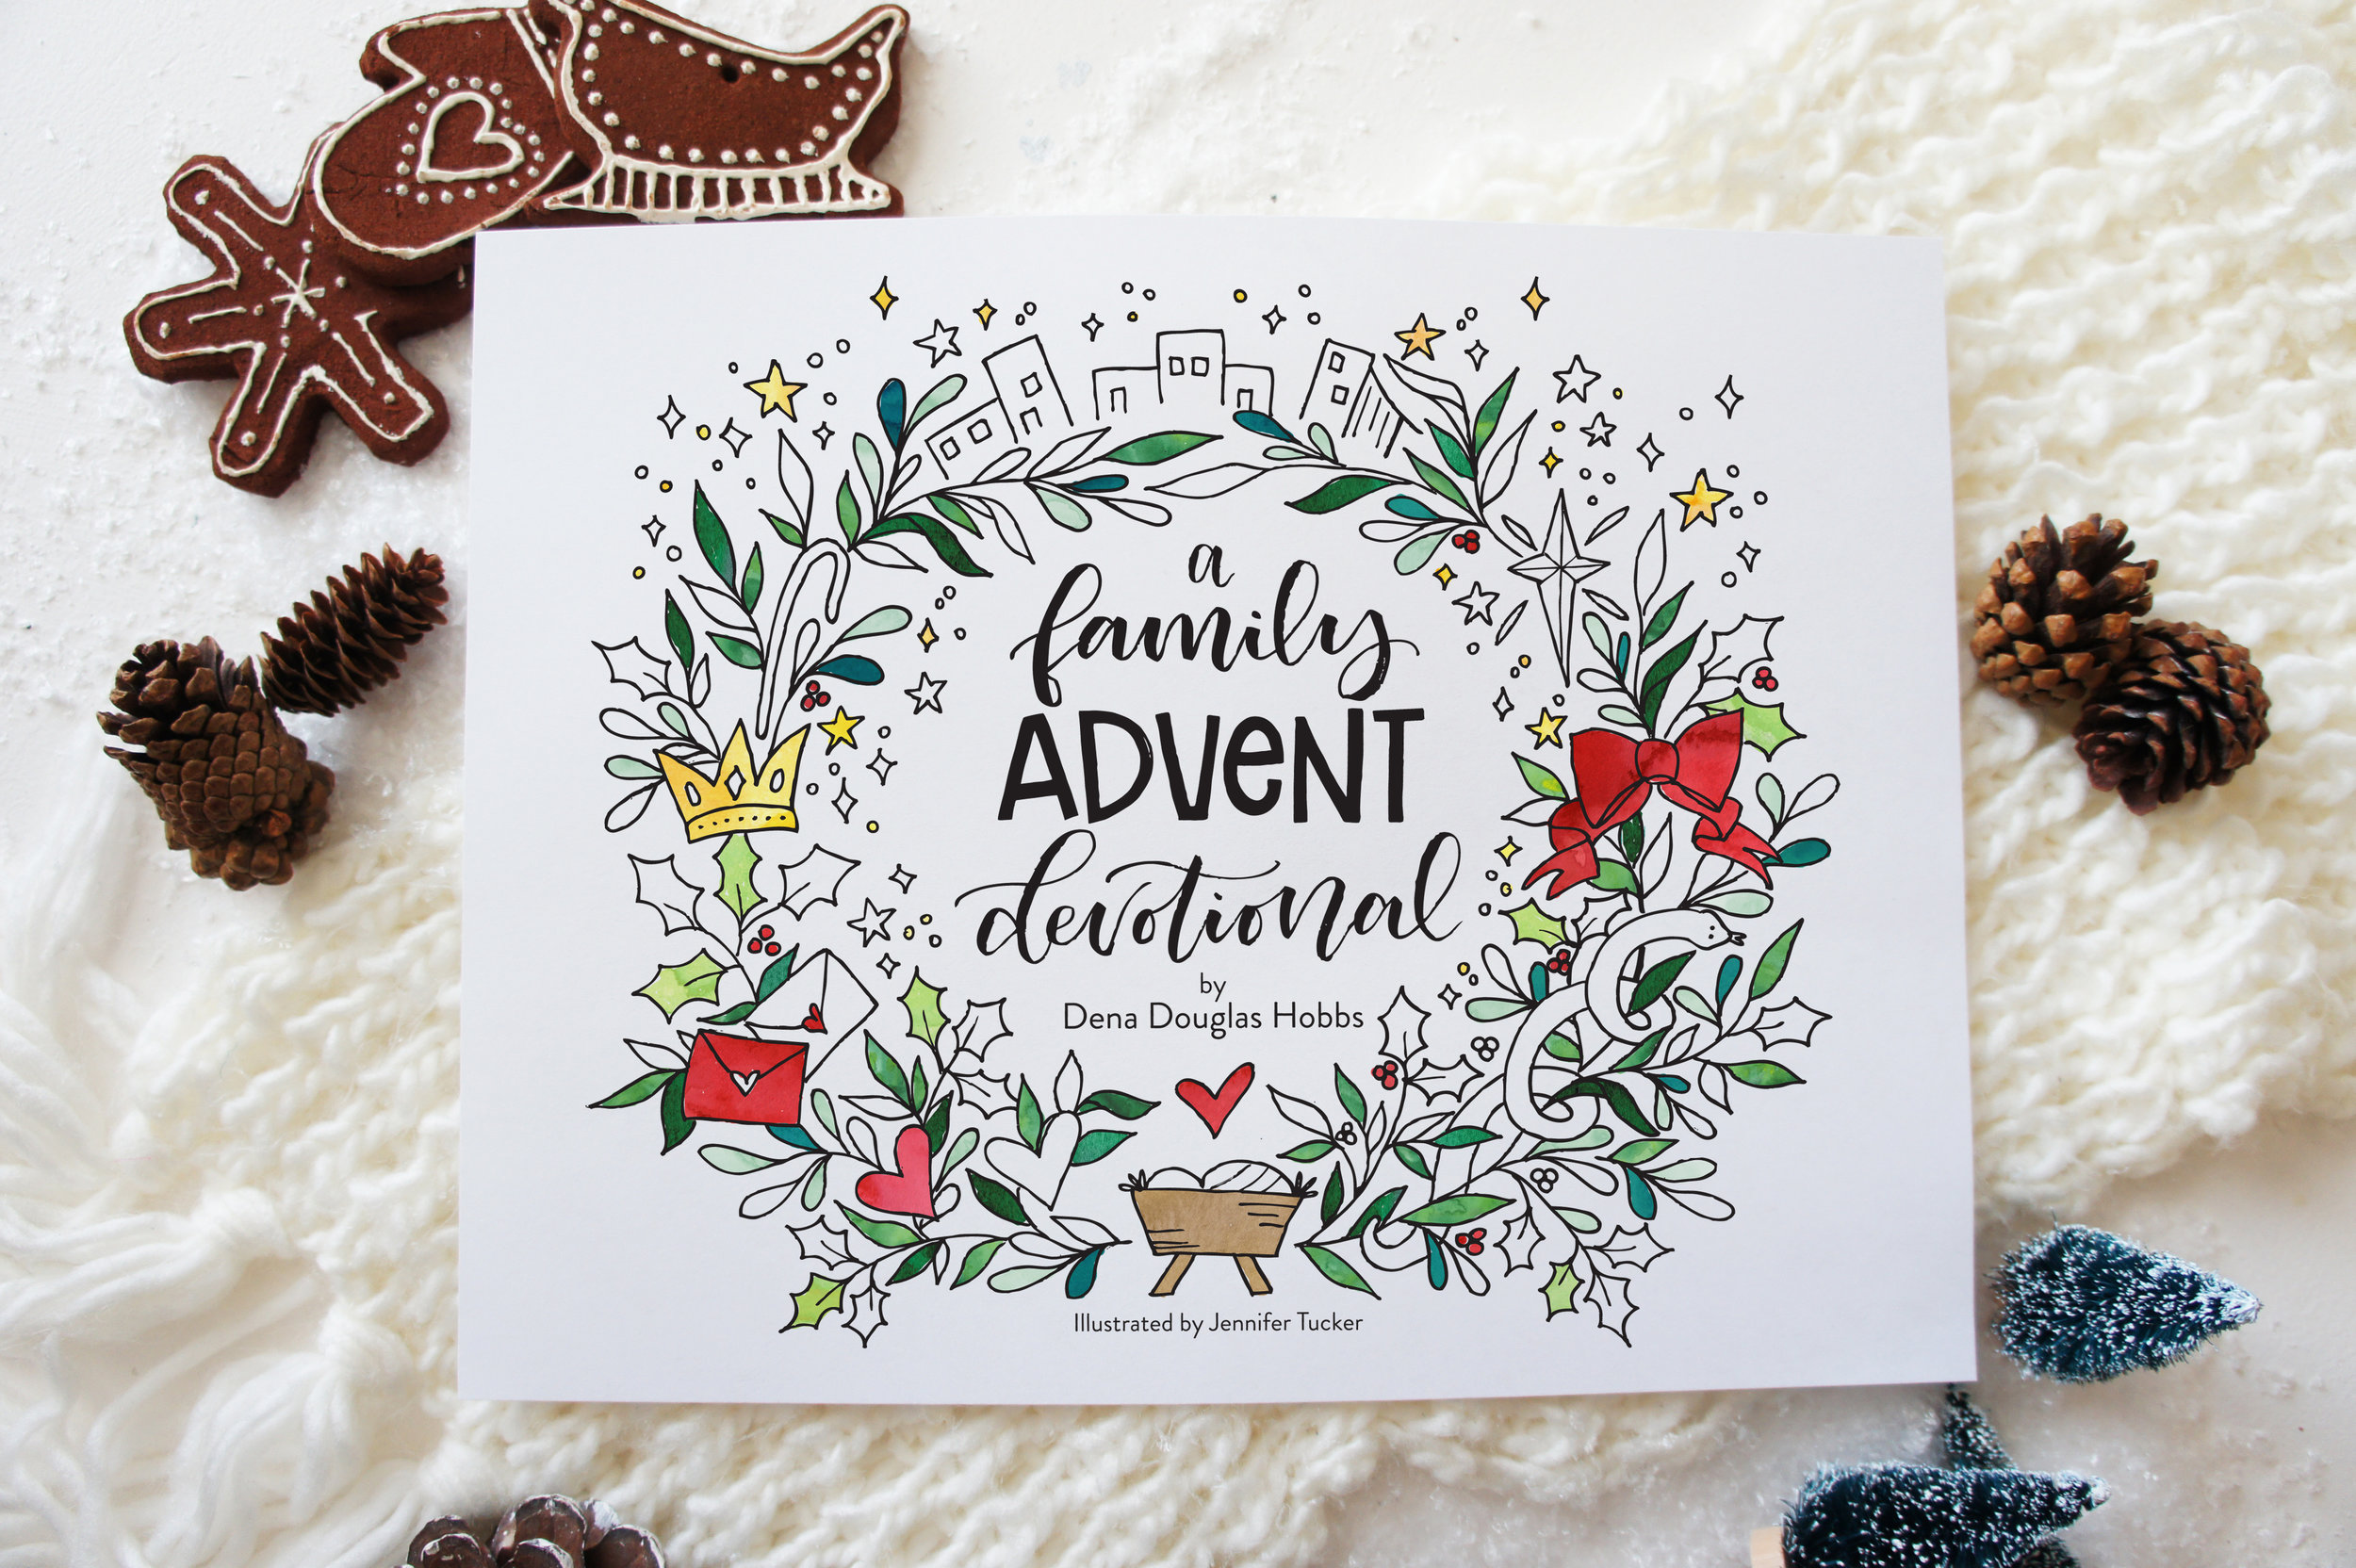 Little House Studio | a Family Advent Devotional